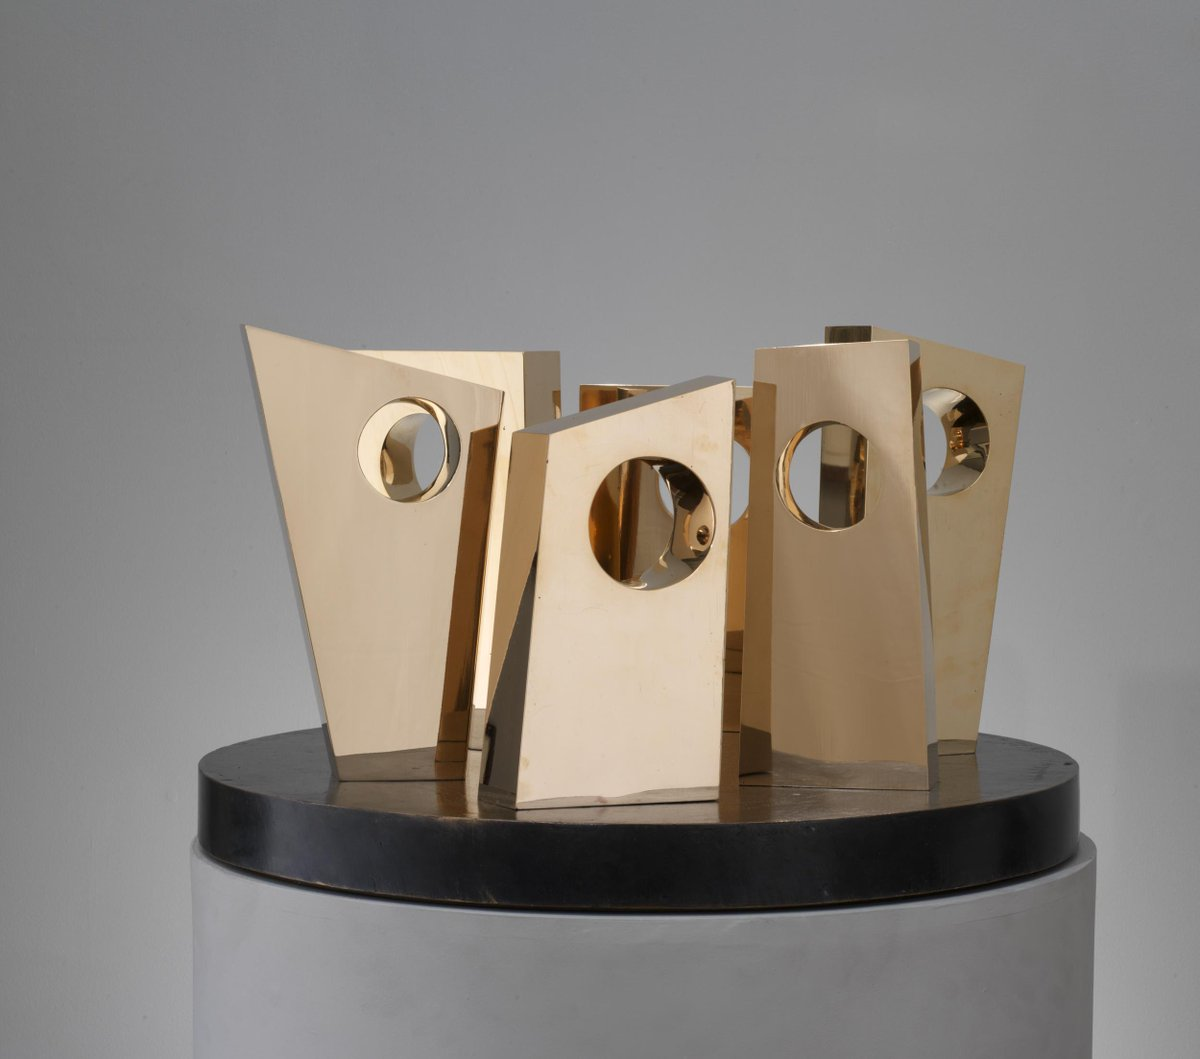 First #TASPreview! This #BarbaraHepworth sculpture will be on view at @OsborneSamuel on Pier 92 http://t.co/8eJn96lkQt